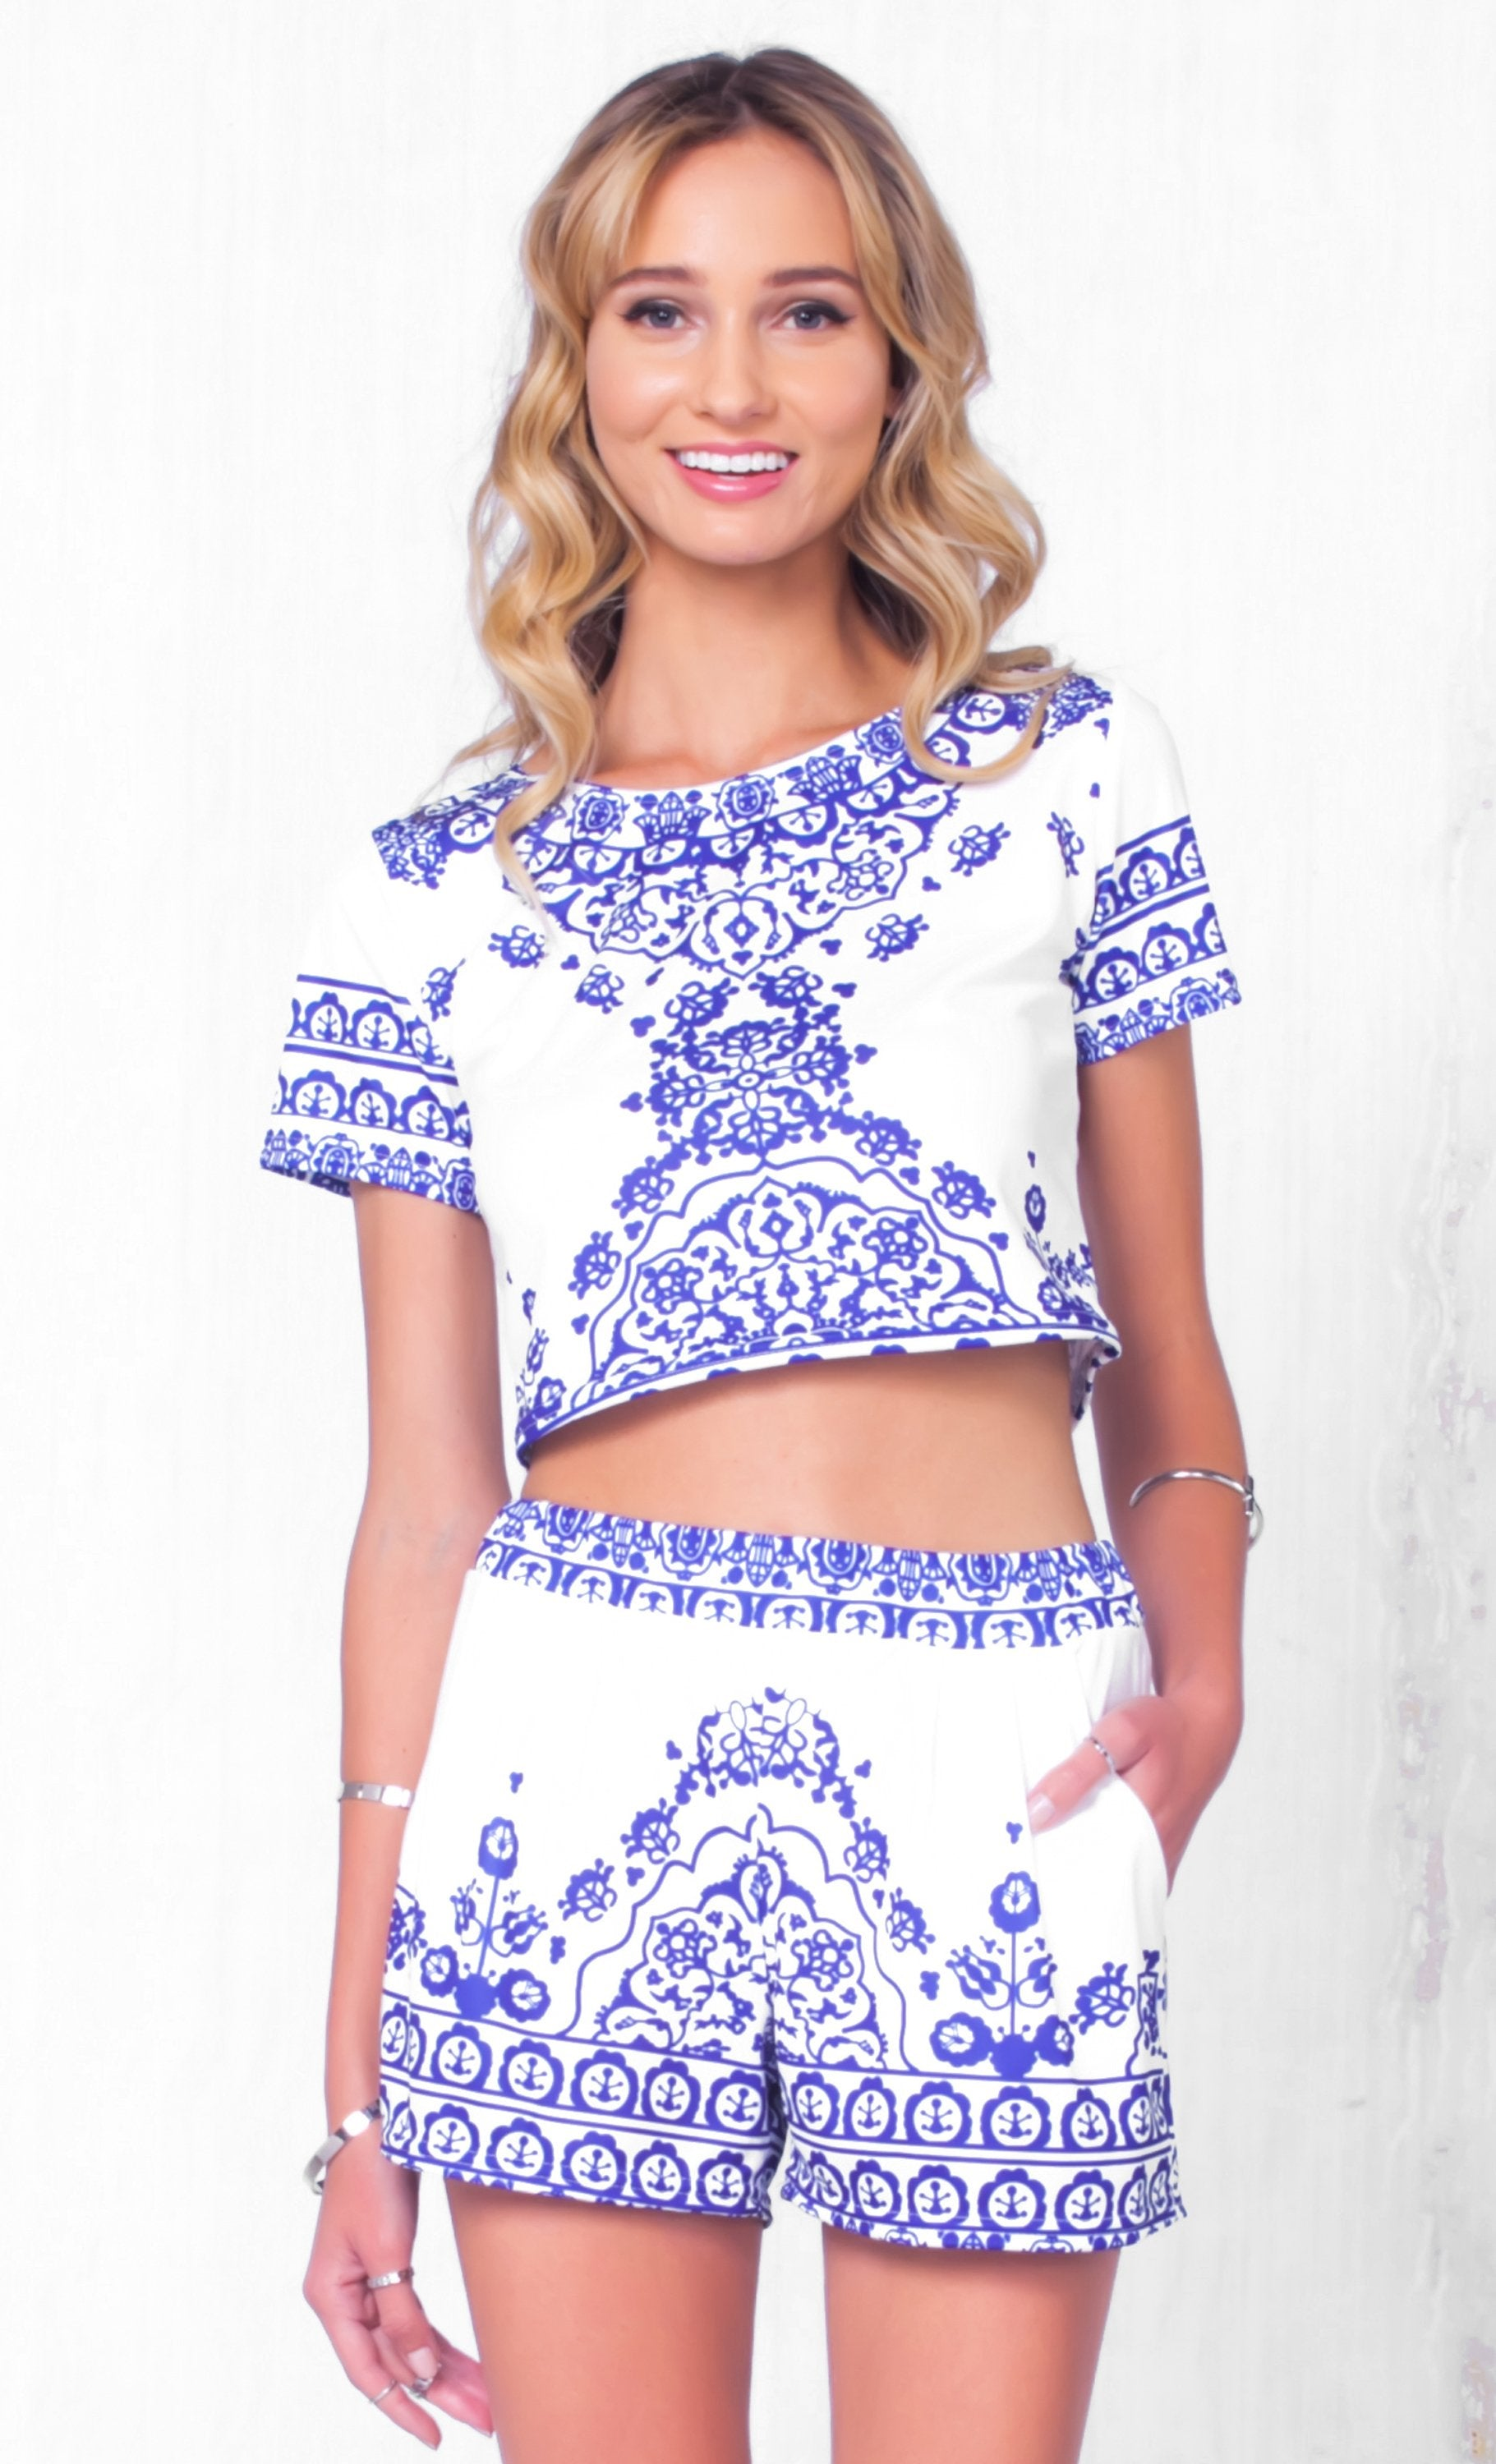 00c2b363a7c9 Indie XO Indian Summer White Blue Floral Short Sleeve Scoop Neck Crop Top  Pleated Shorts Two